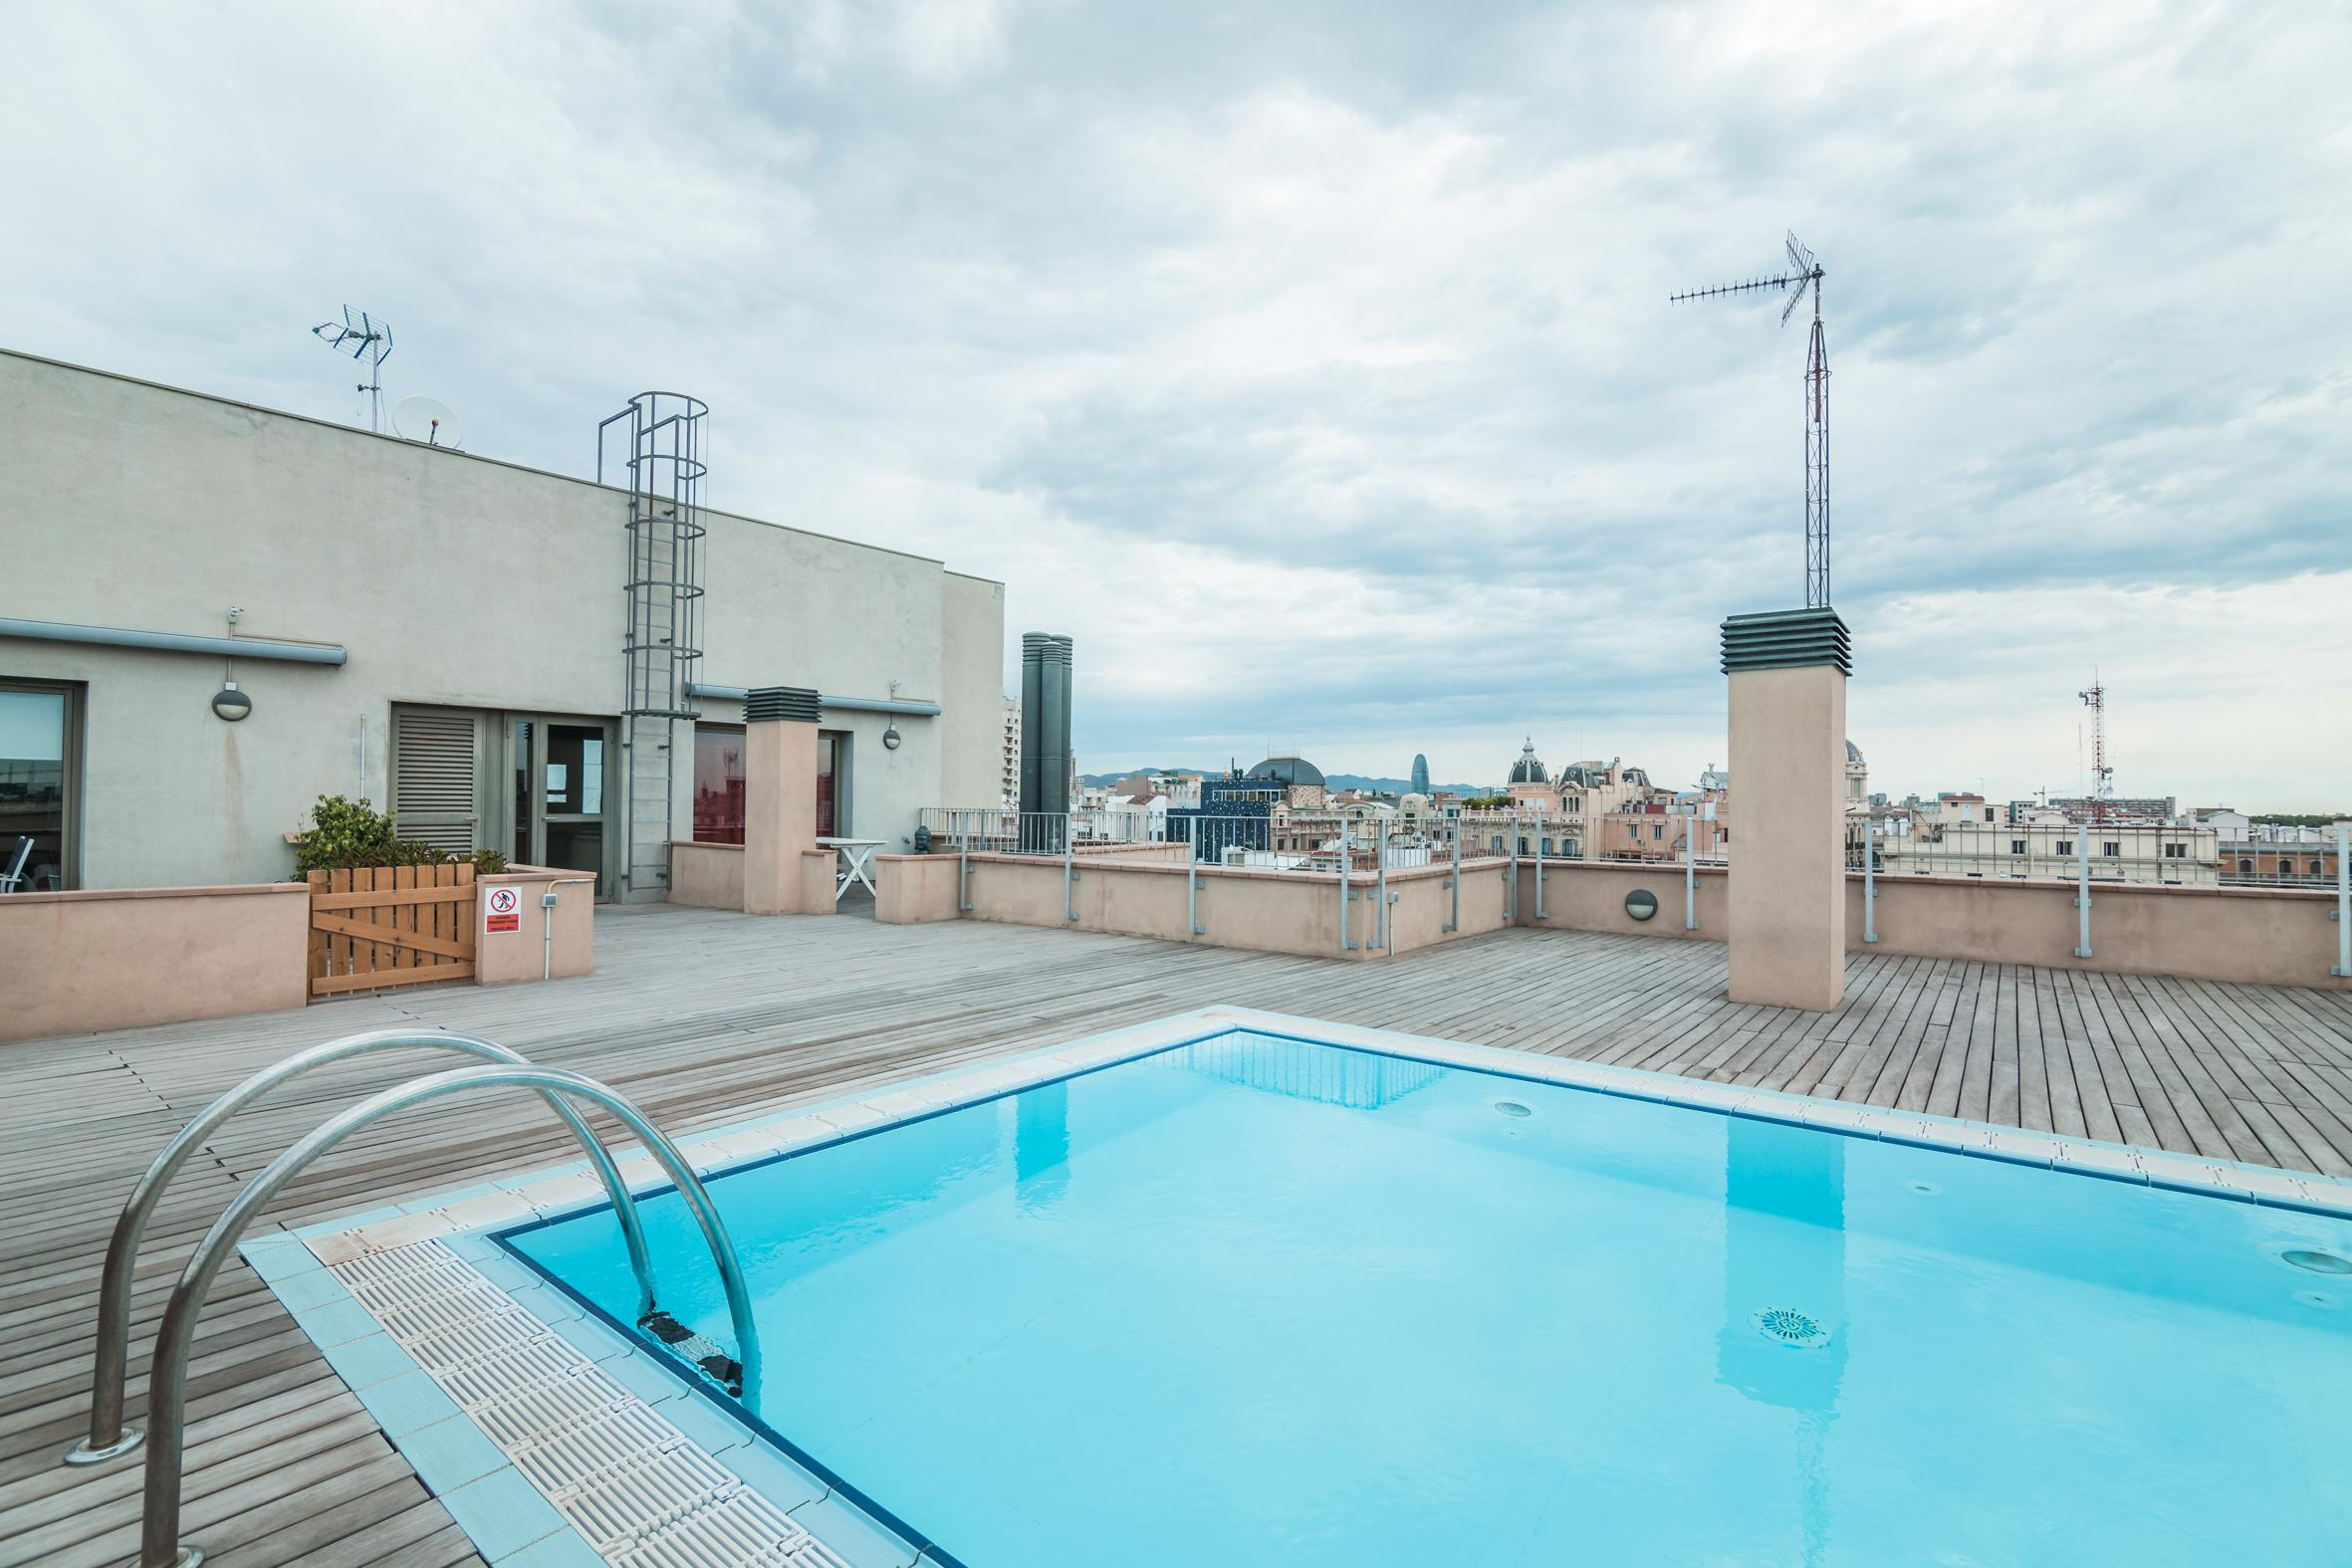 194056 Flat for sale in Ciutat Vella, Barri Gótic 22